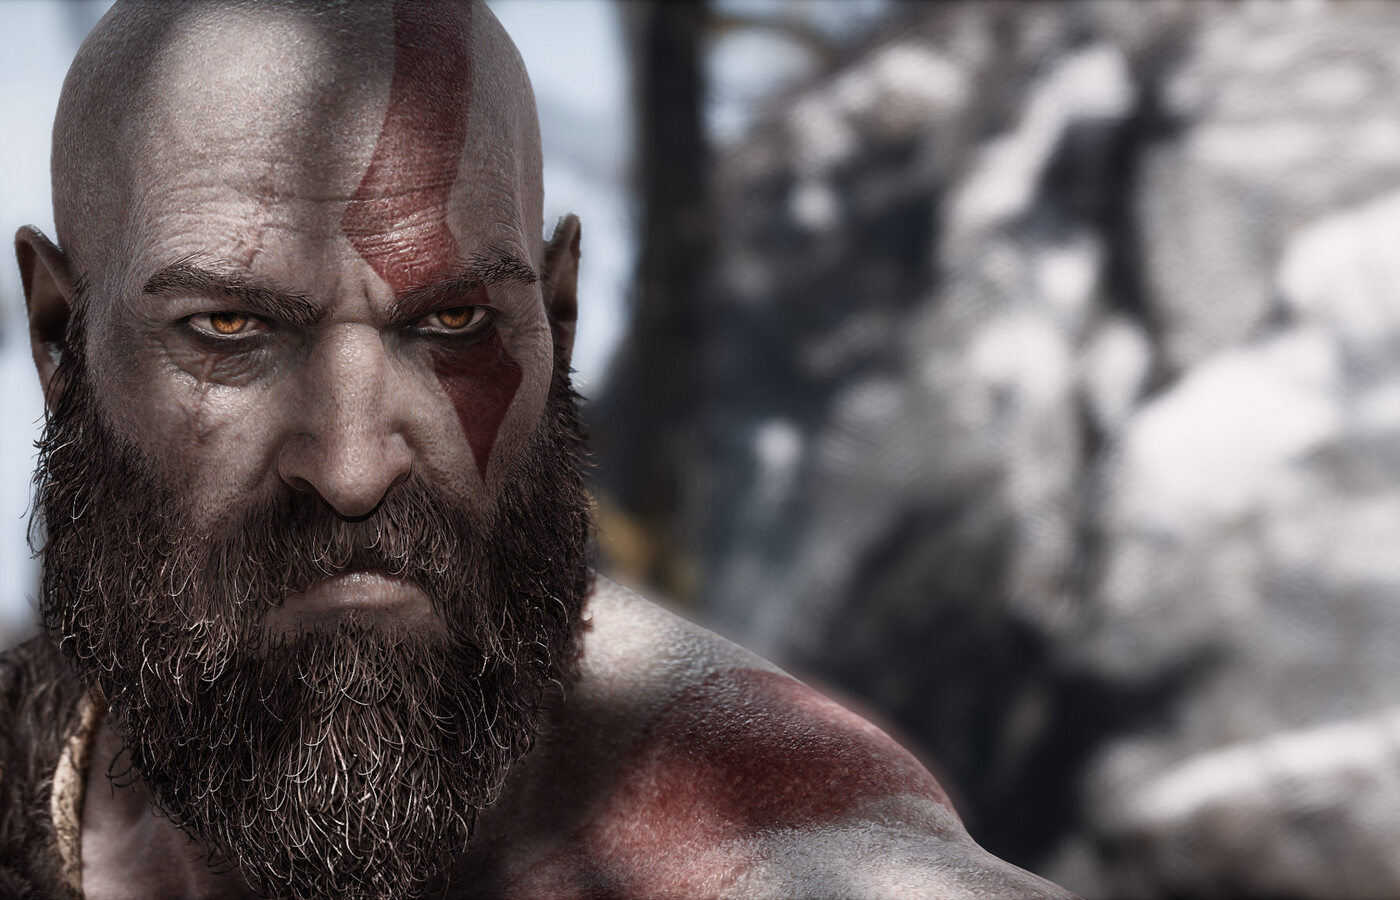 1400x900 Kratos God Of War 4 Video Game 1400x900 Resolution